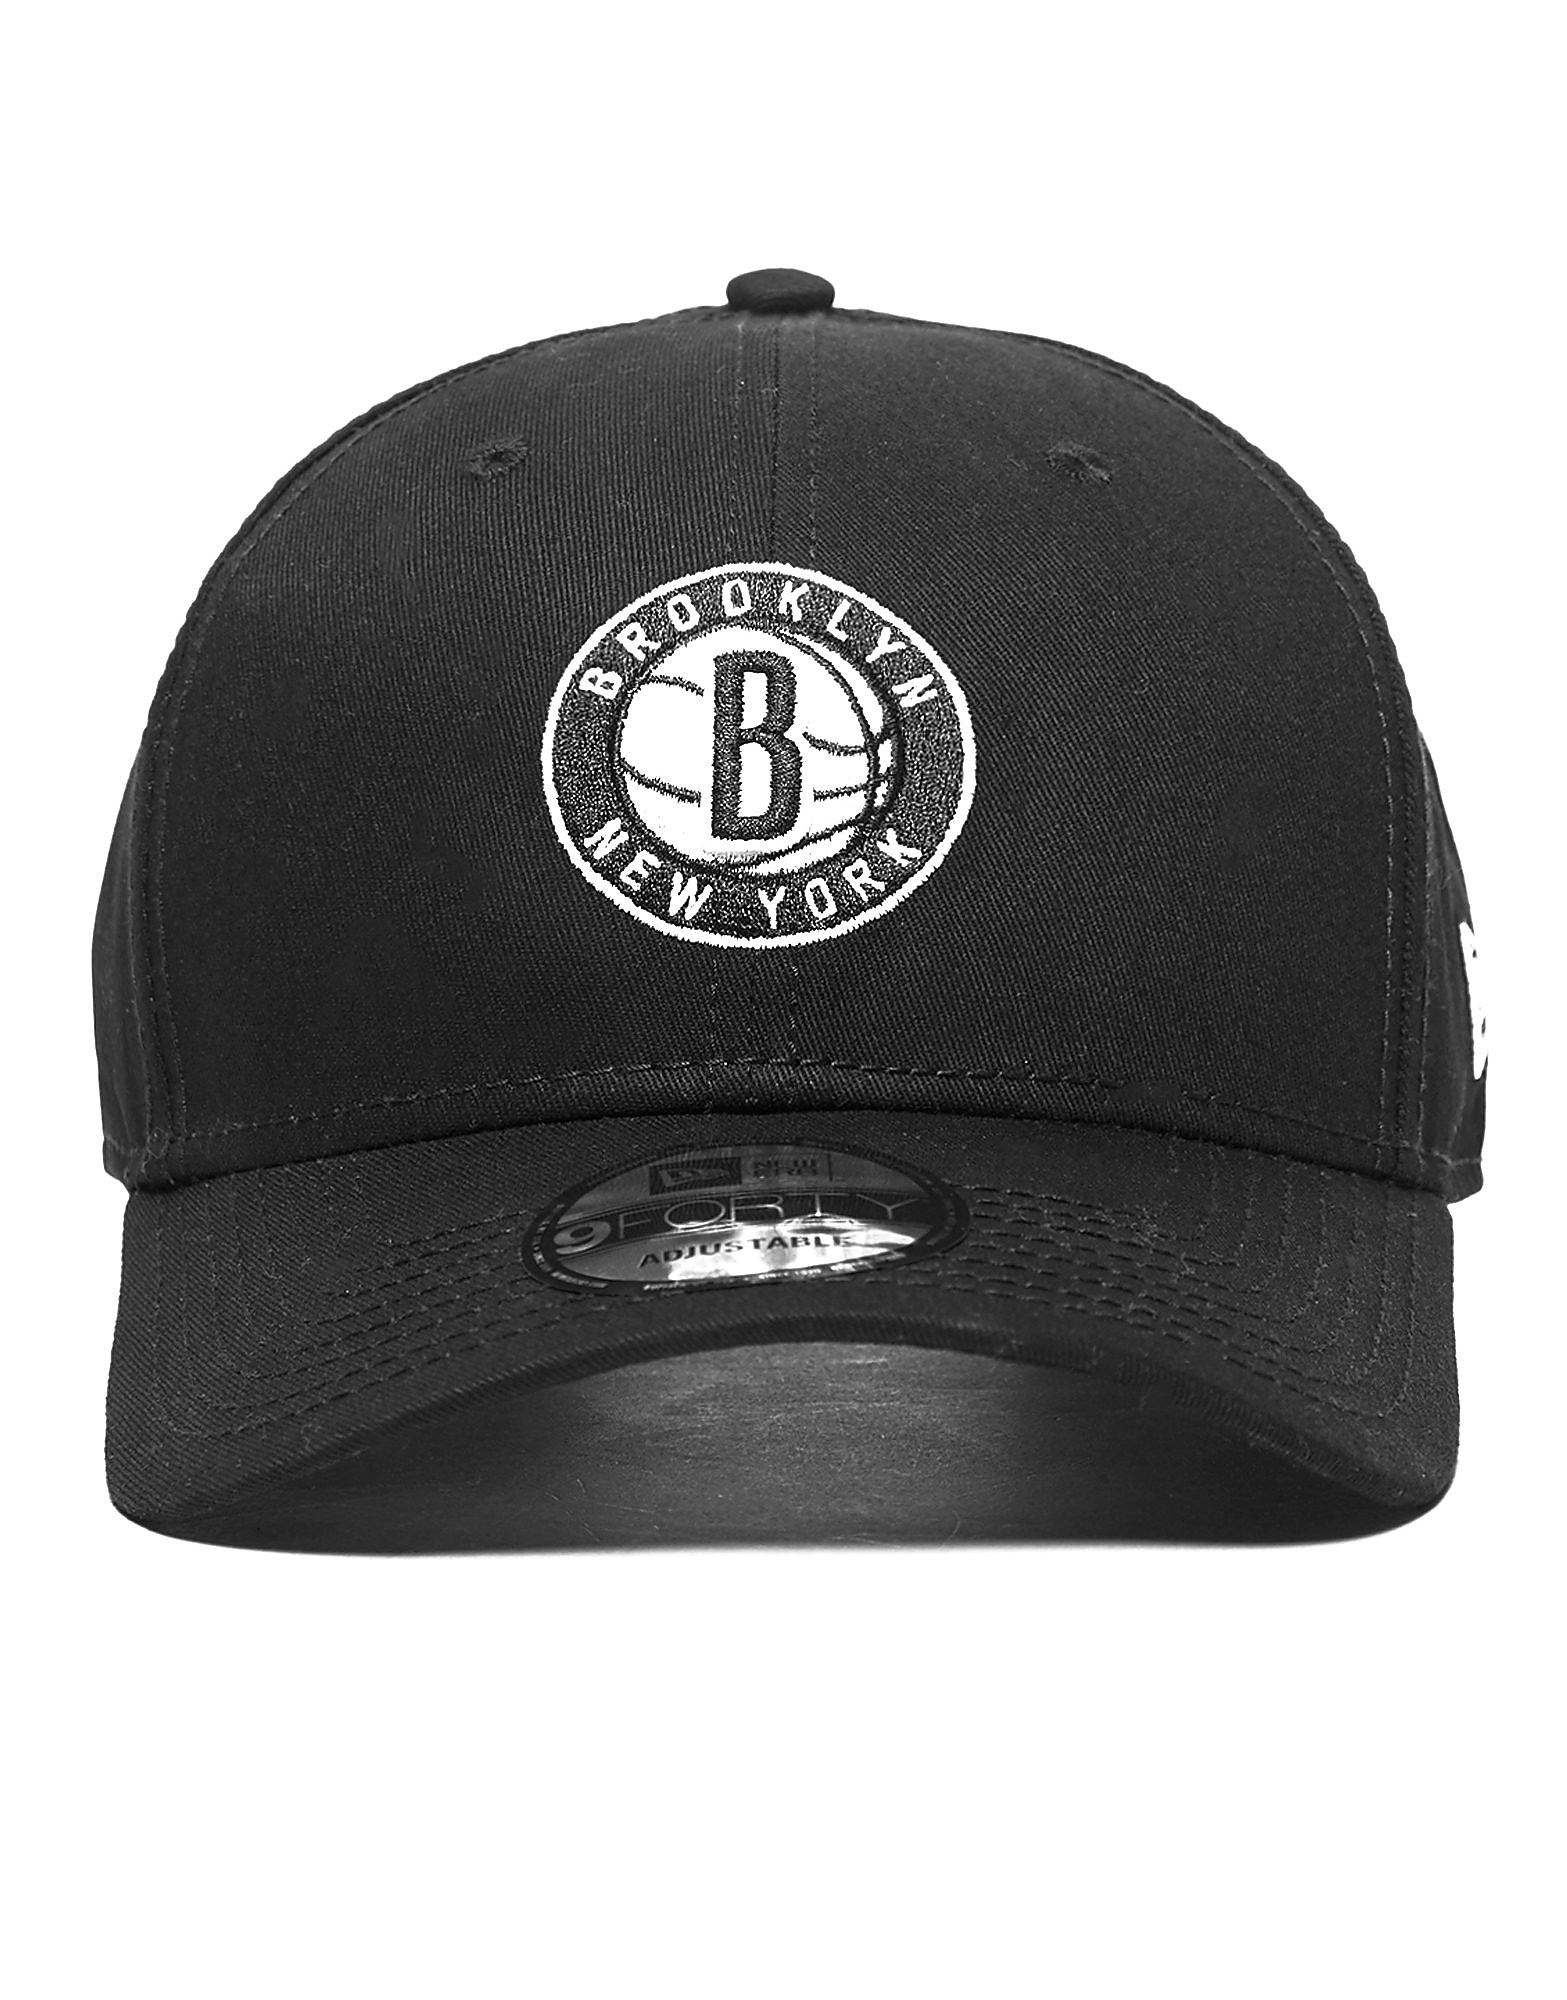 New Era 9FORTY NBA Brooklyn Nets Cap